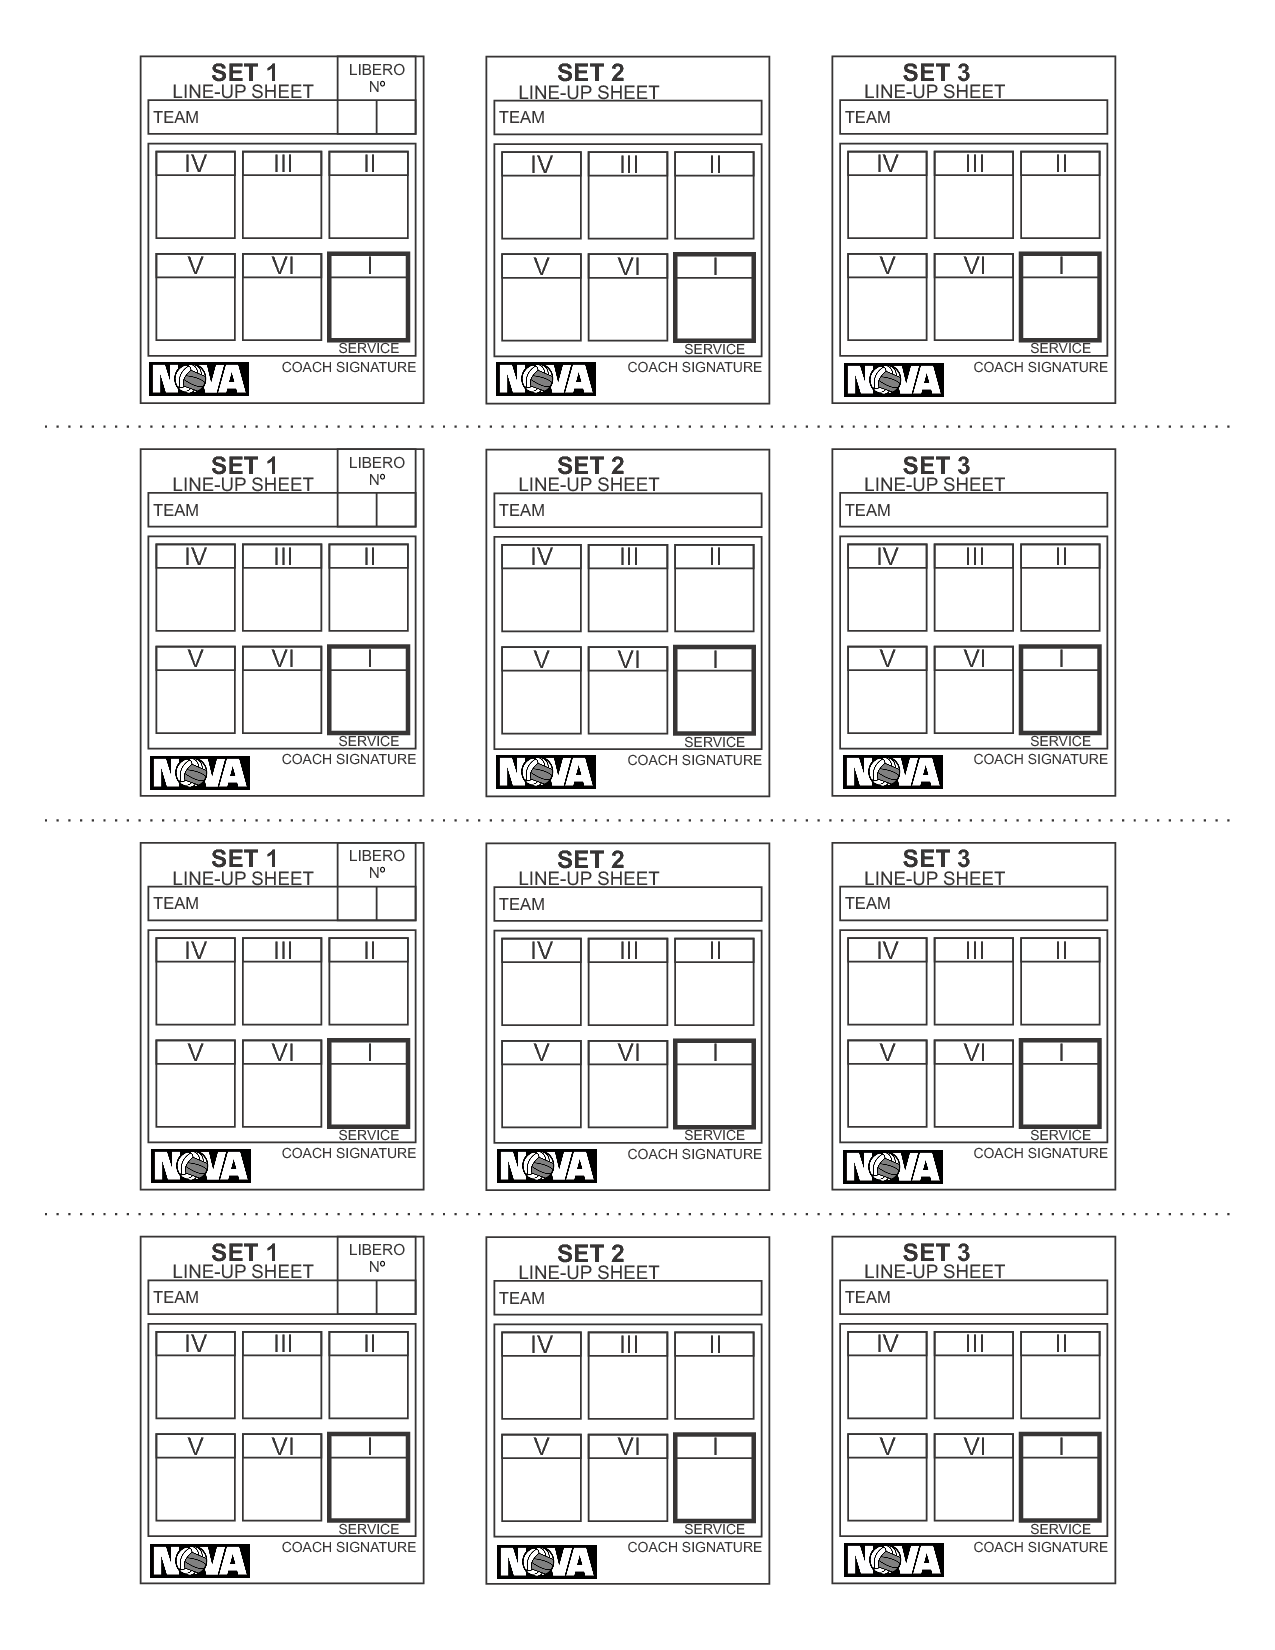 image regarding Volleyball Rotation Sheet Printable known as Rotation Playing cards Training Volleyball drills, Training